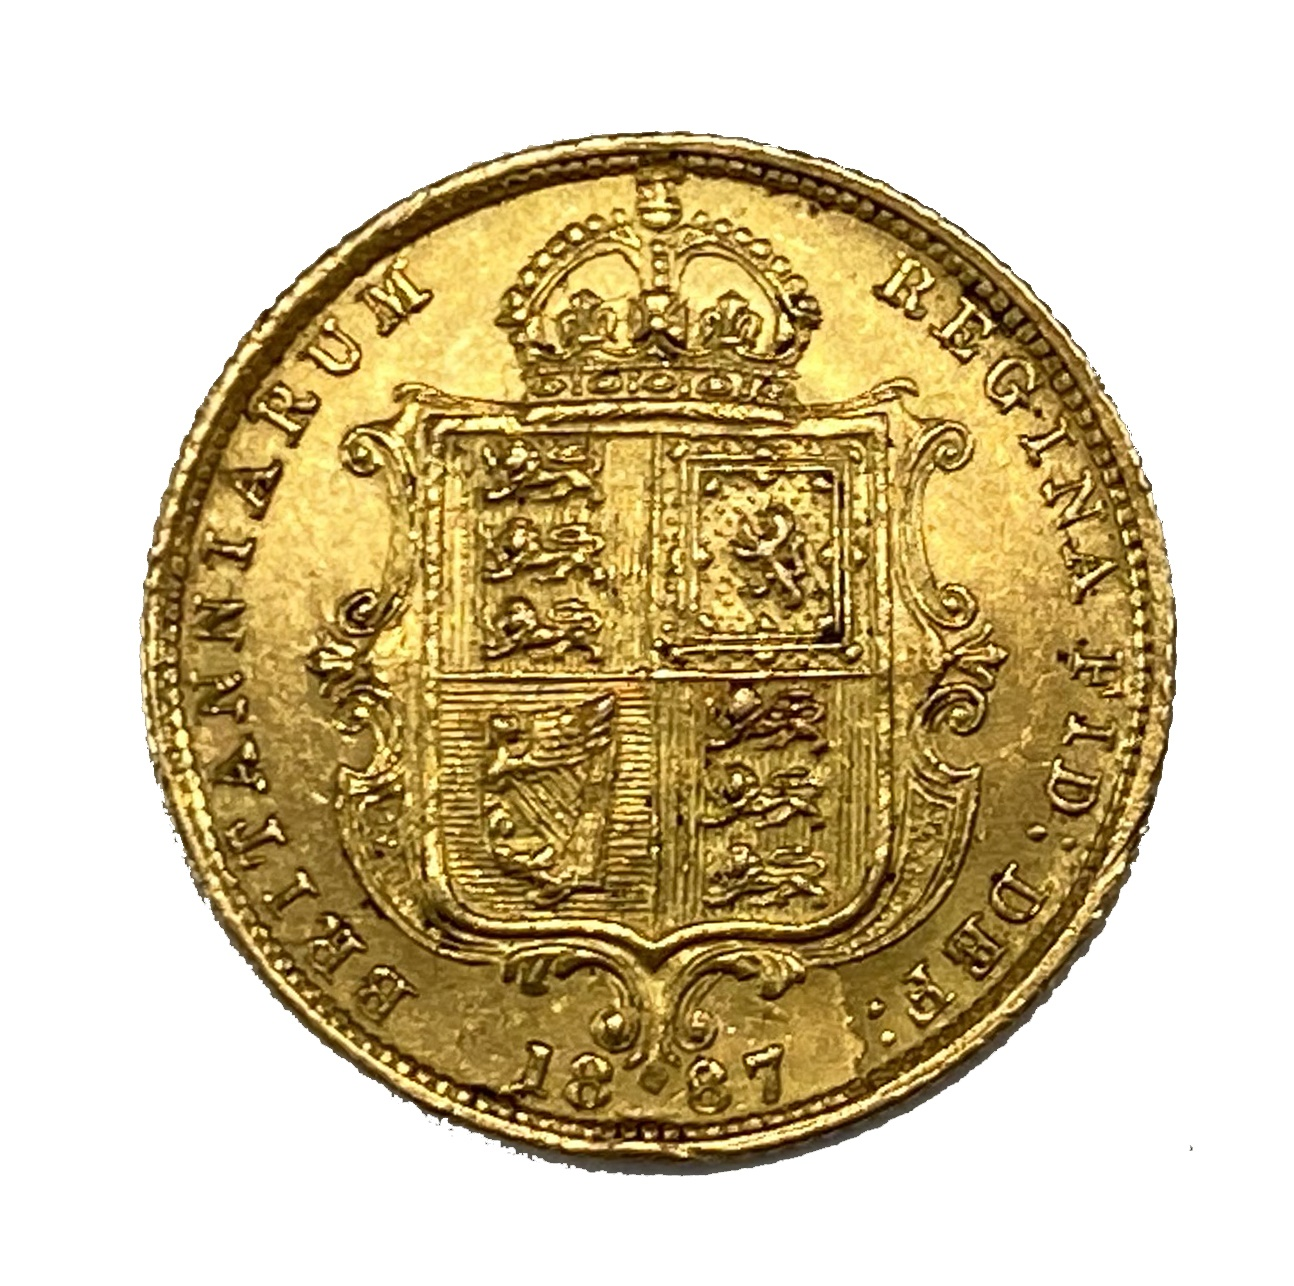 Victoria gold half Sovereign, 1887 - Image 2 of 2